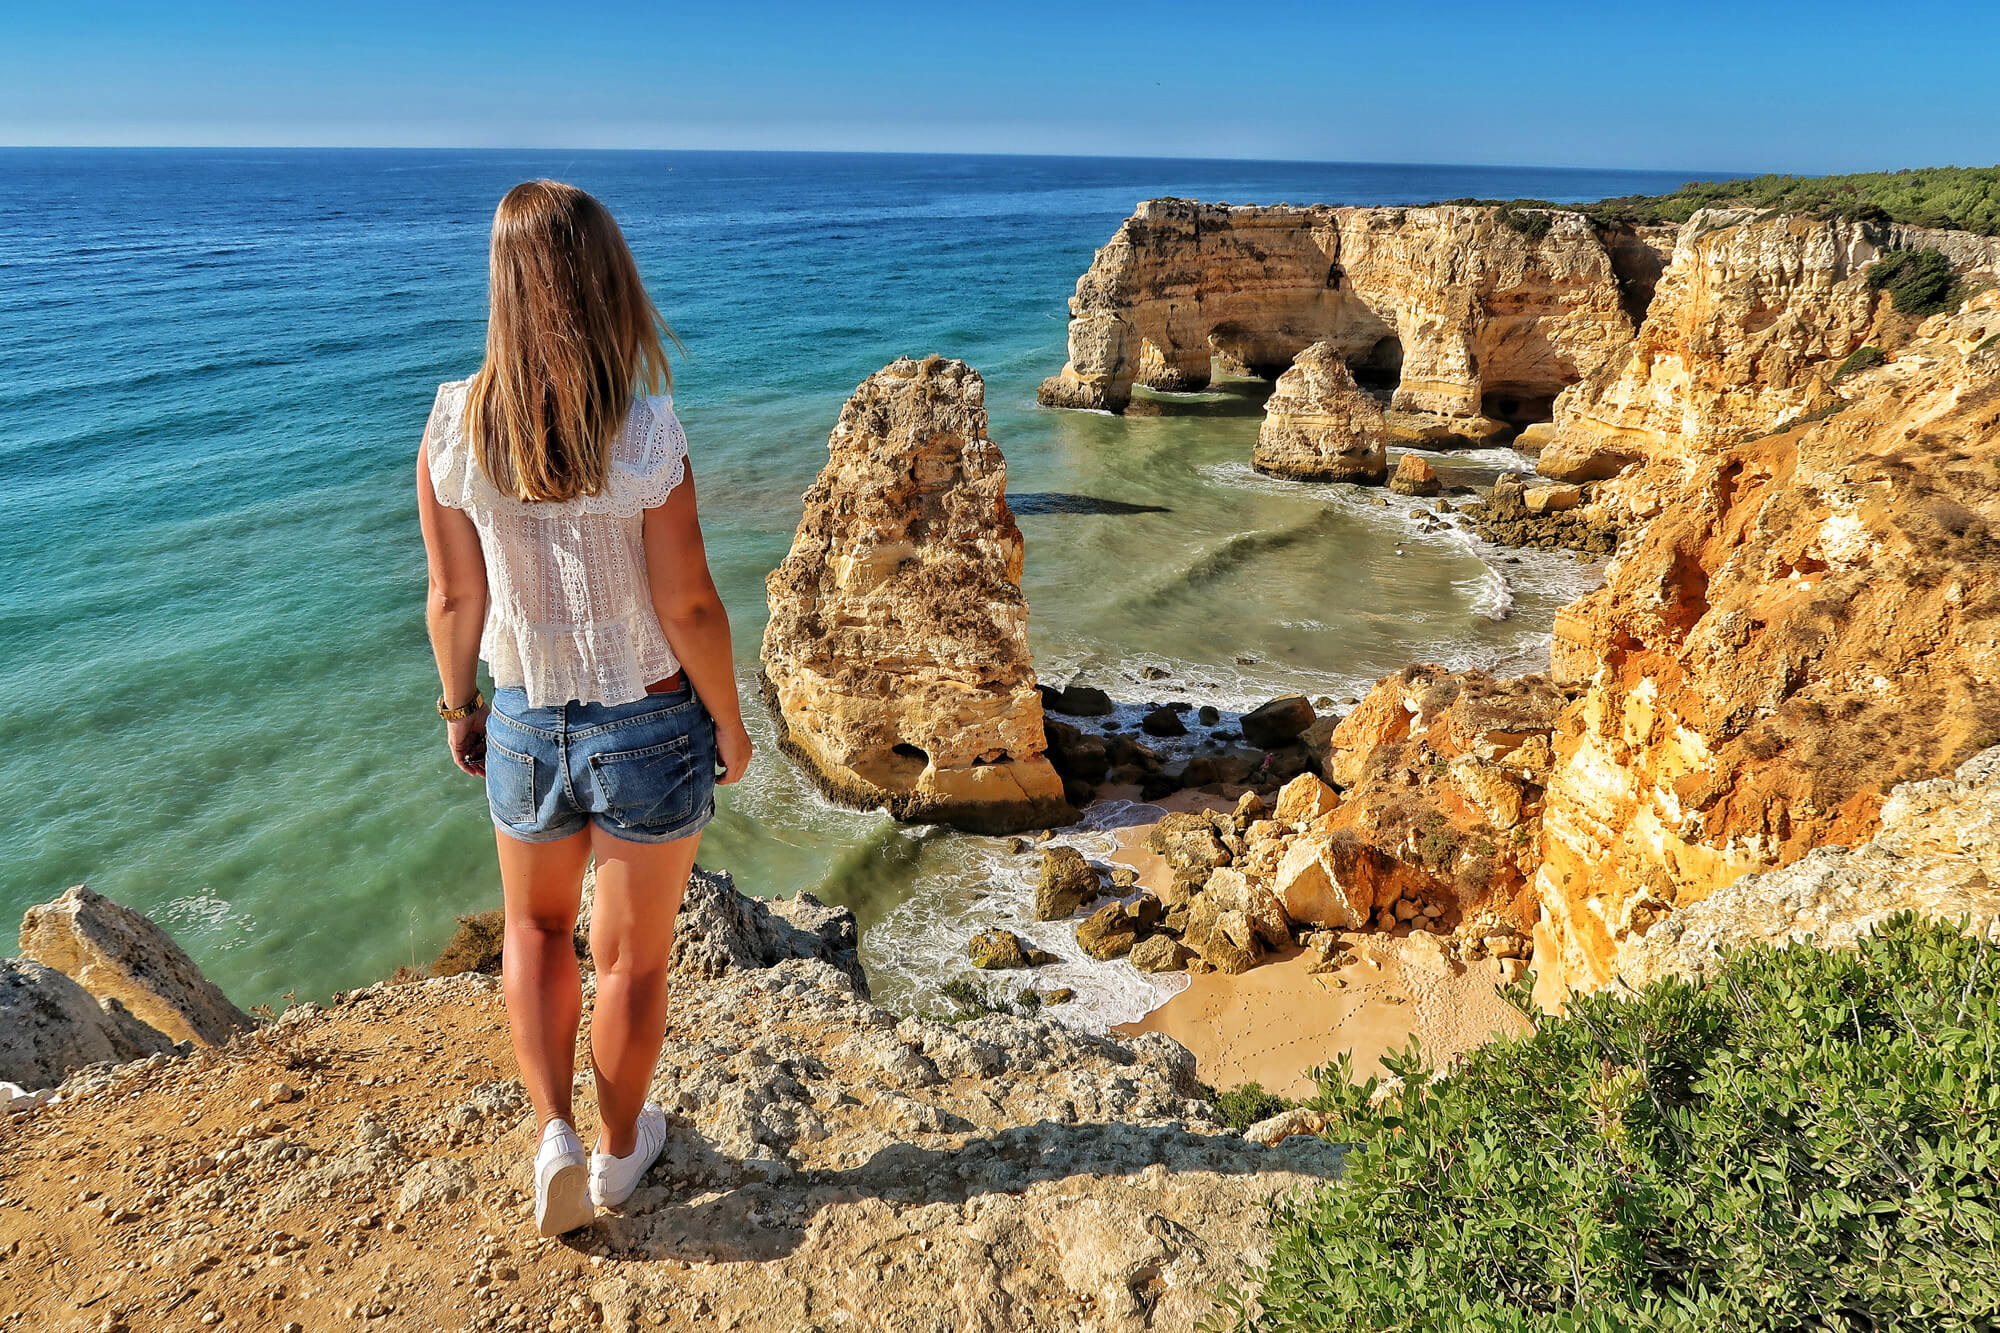 The Algarve: 5 reasons why you must visit - WORLD WANDERISTA